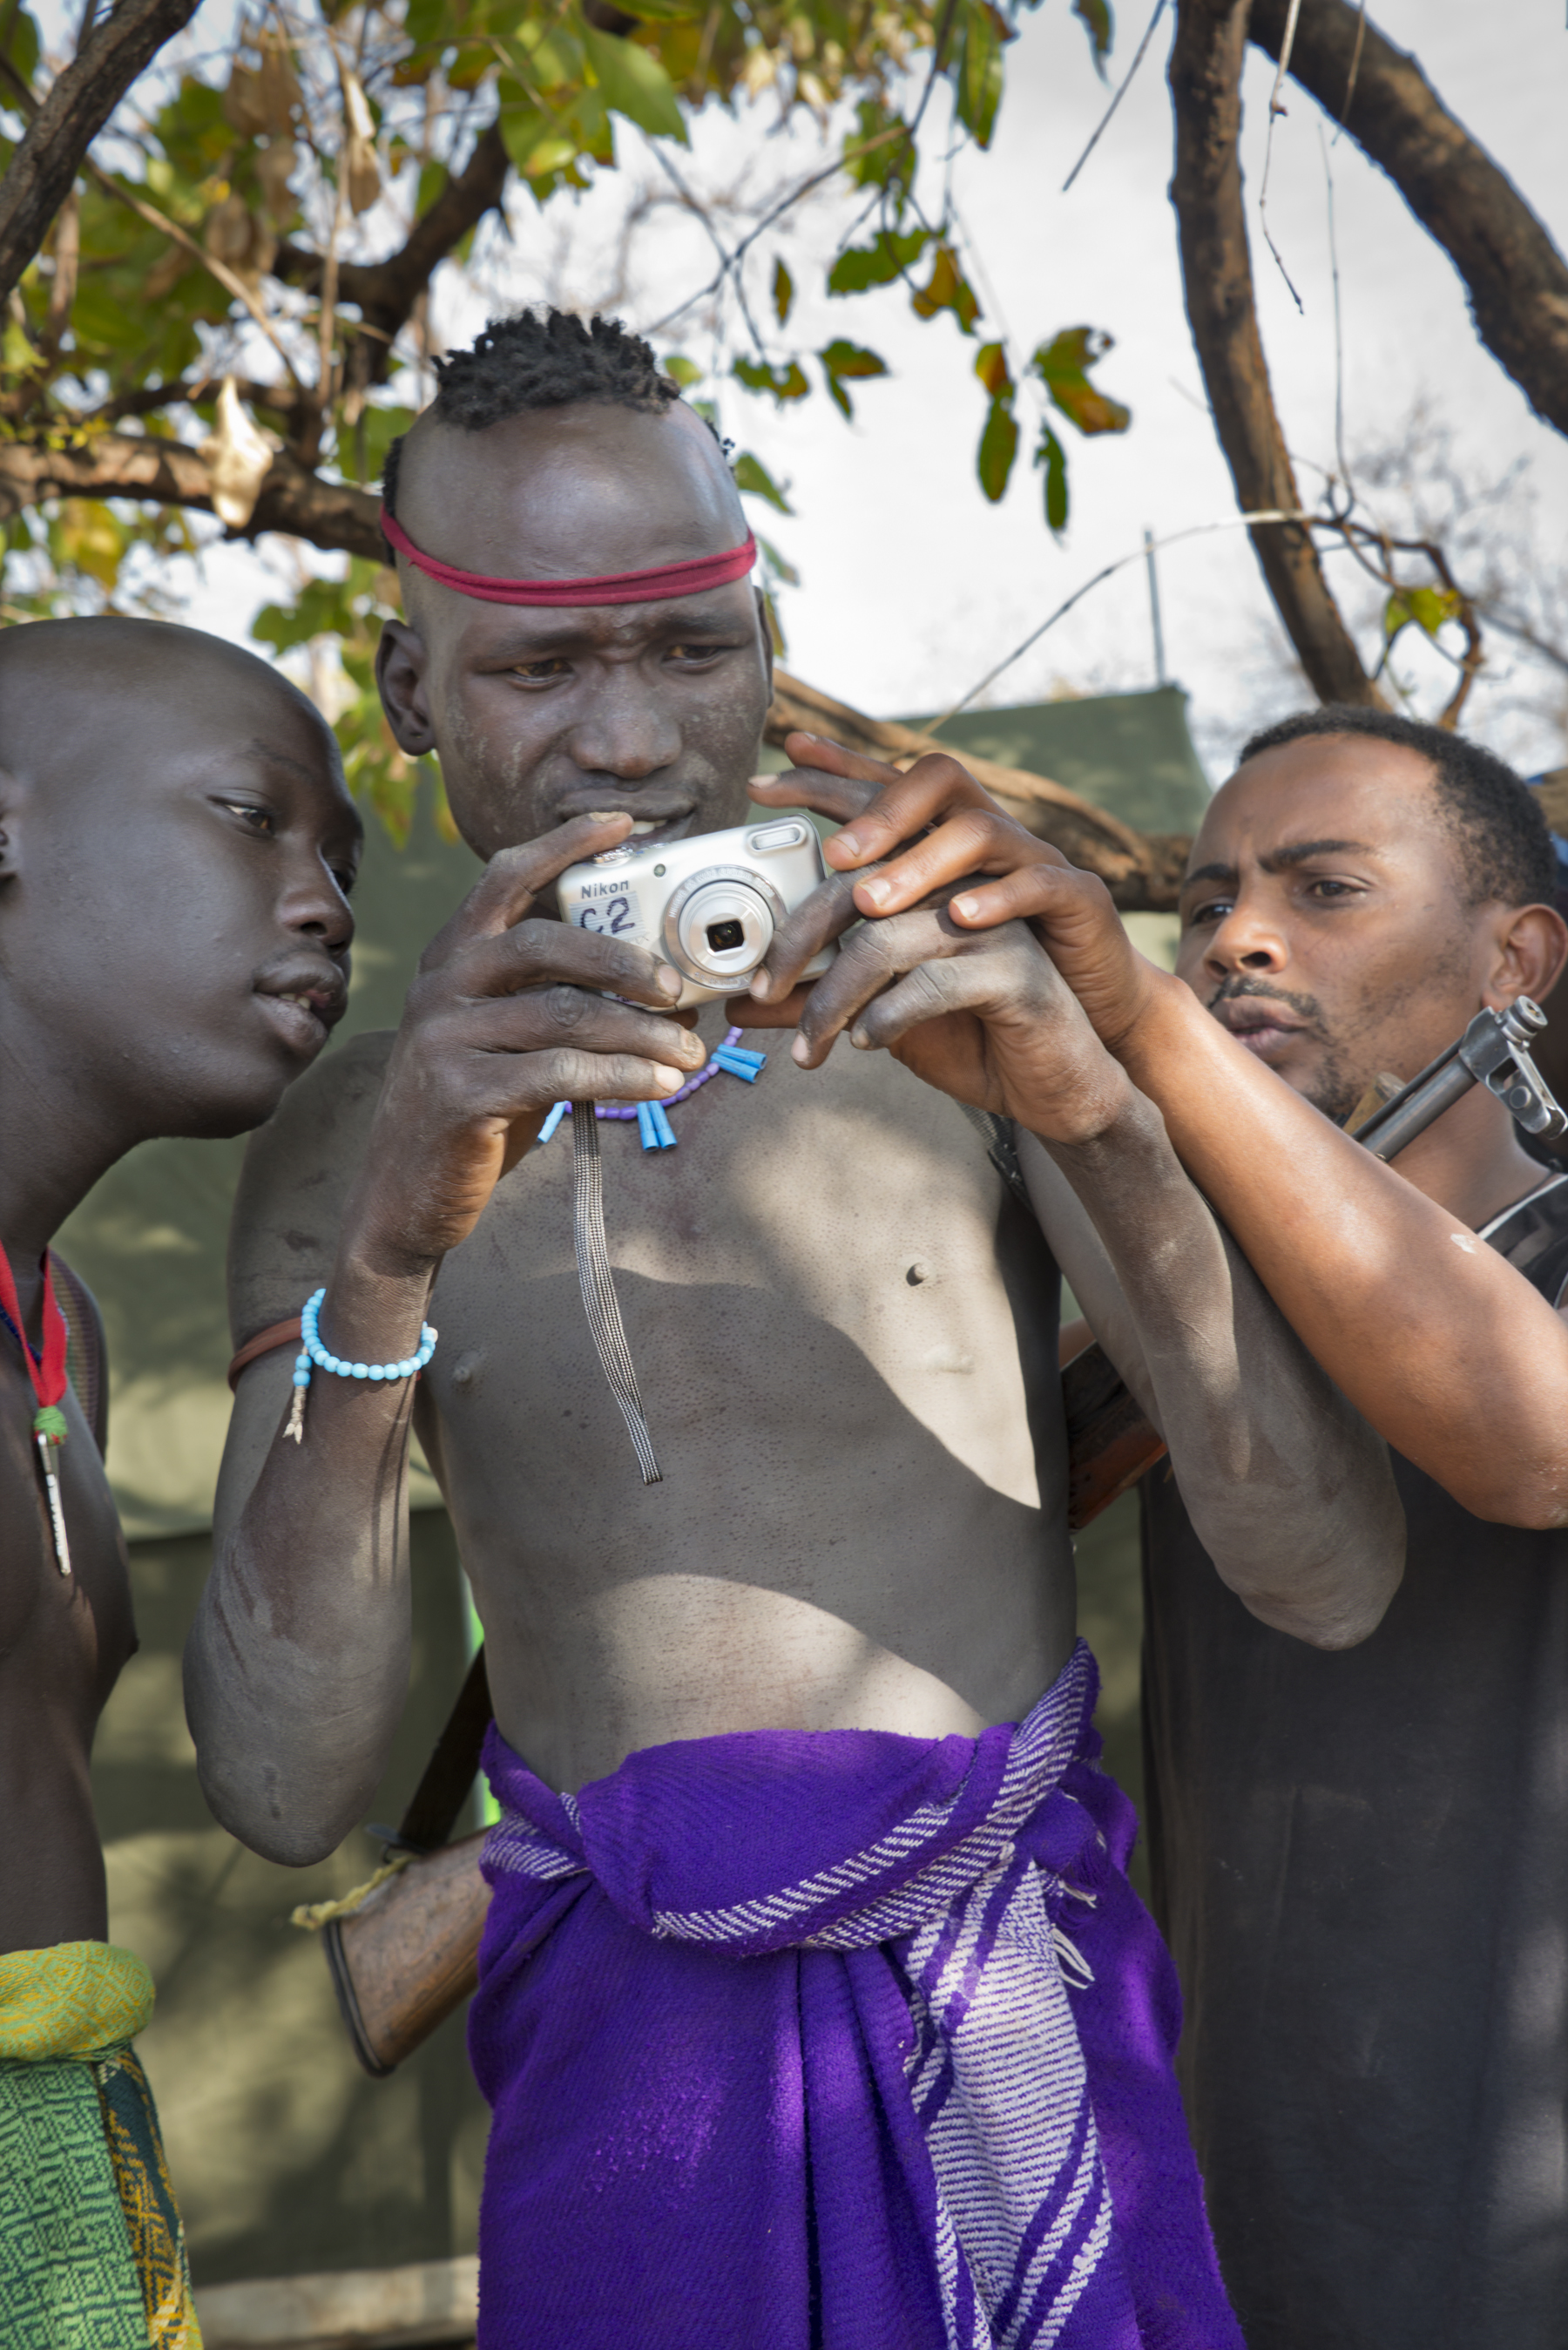 Mursi warriors learn photography